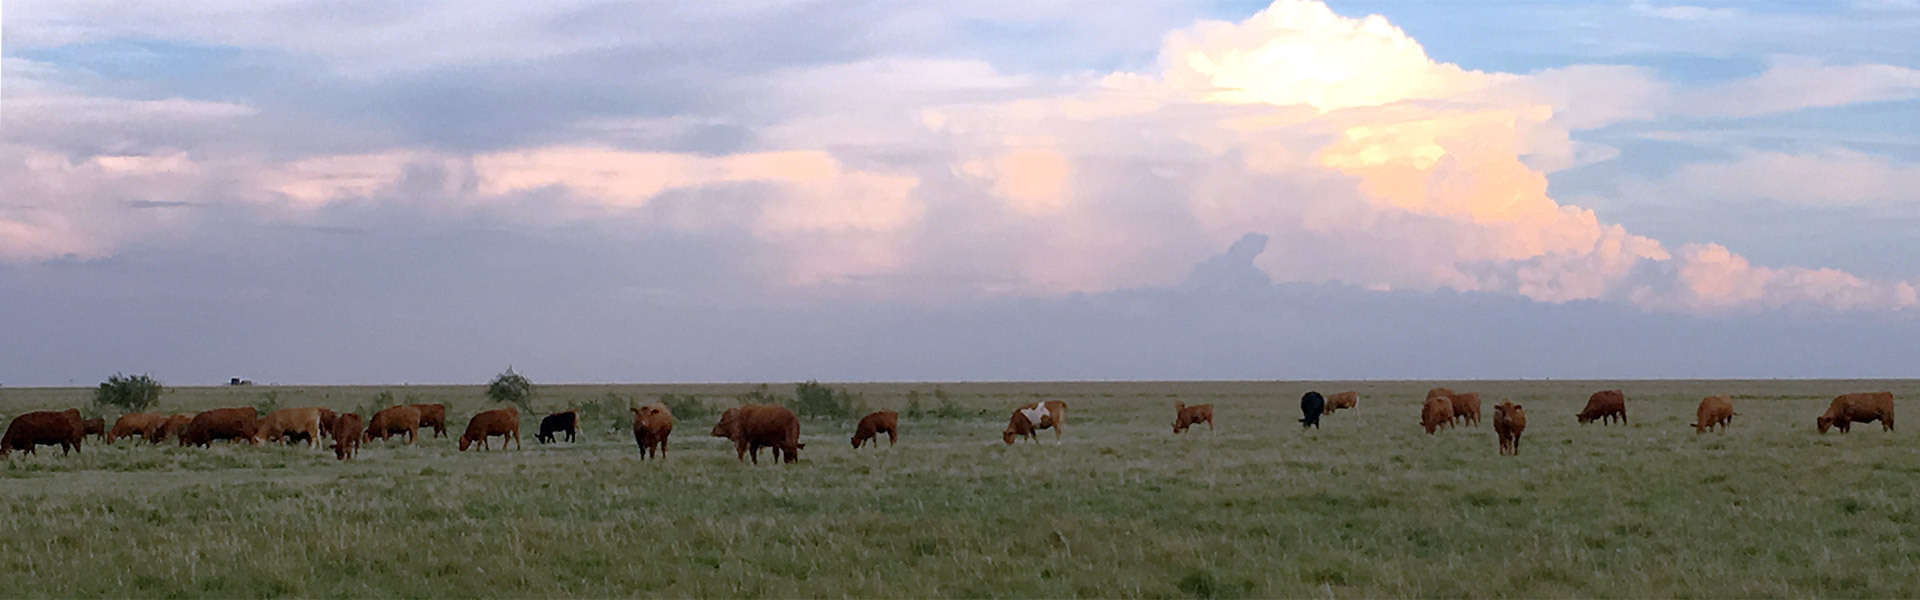 Akaushi cattle grazing on the farm